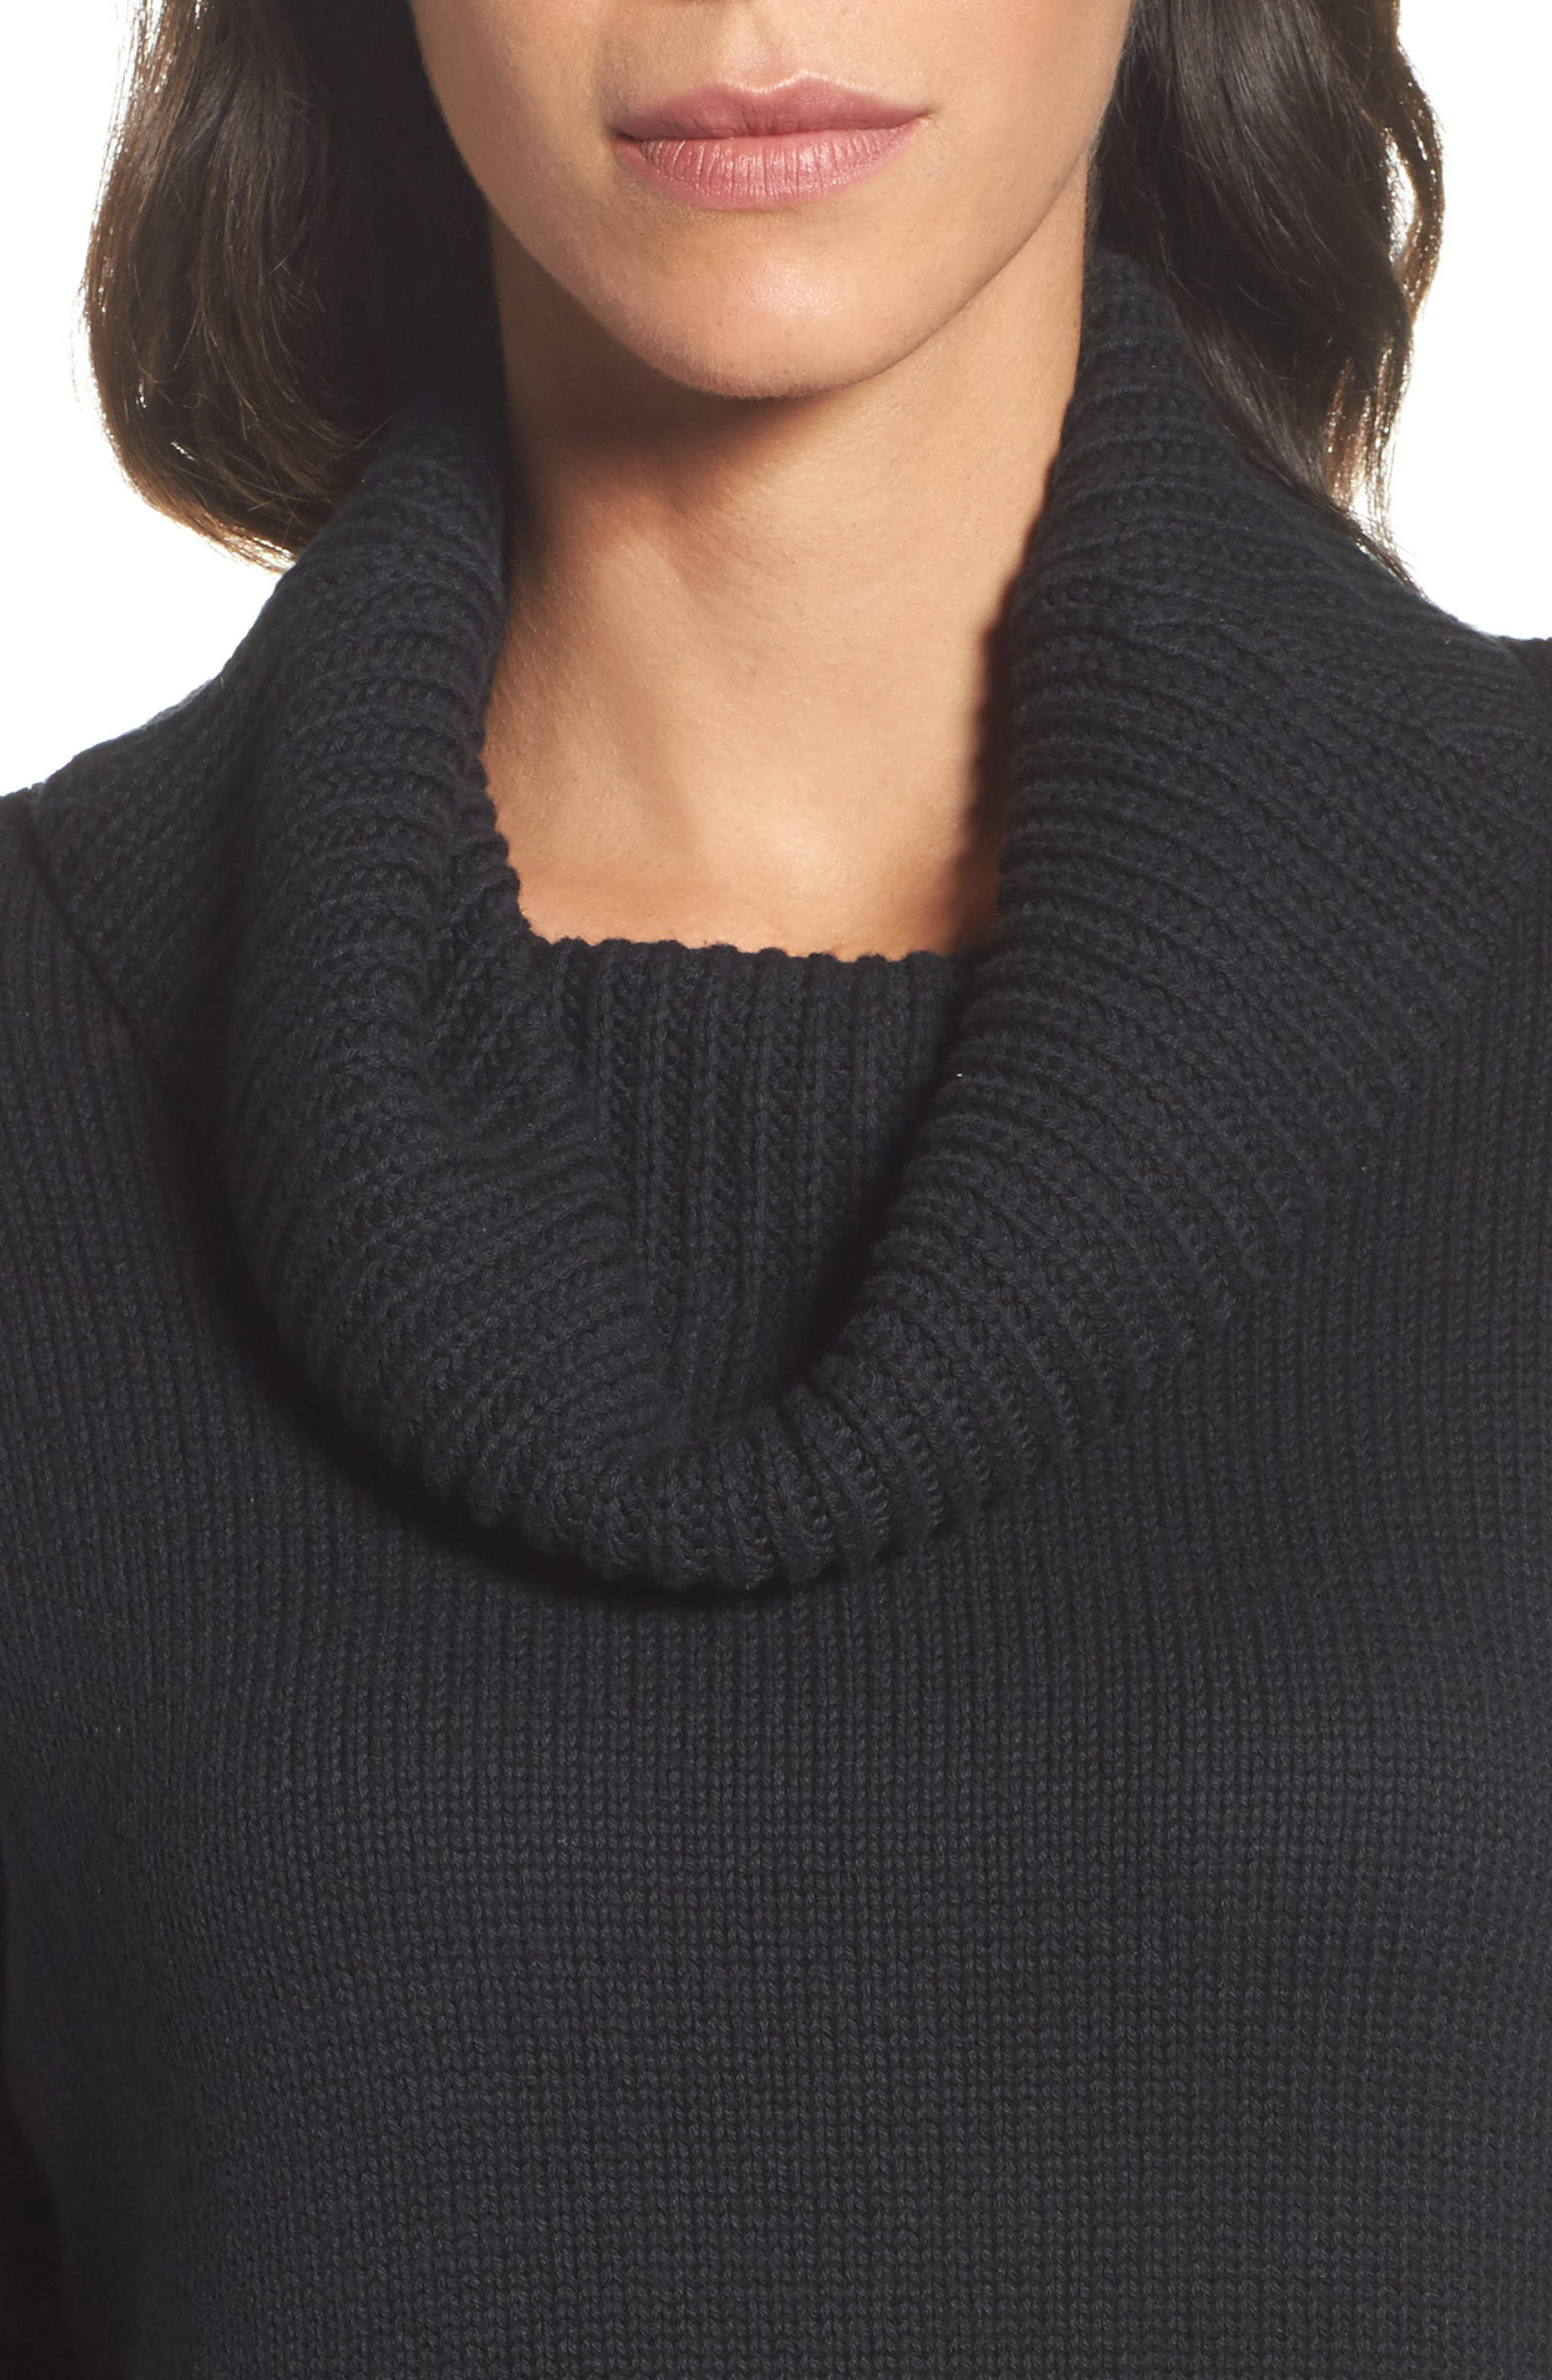 Cowl Neck Tunic Sweater,                             Alternate thumbnail 4, color,                             001